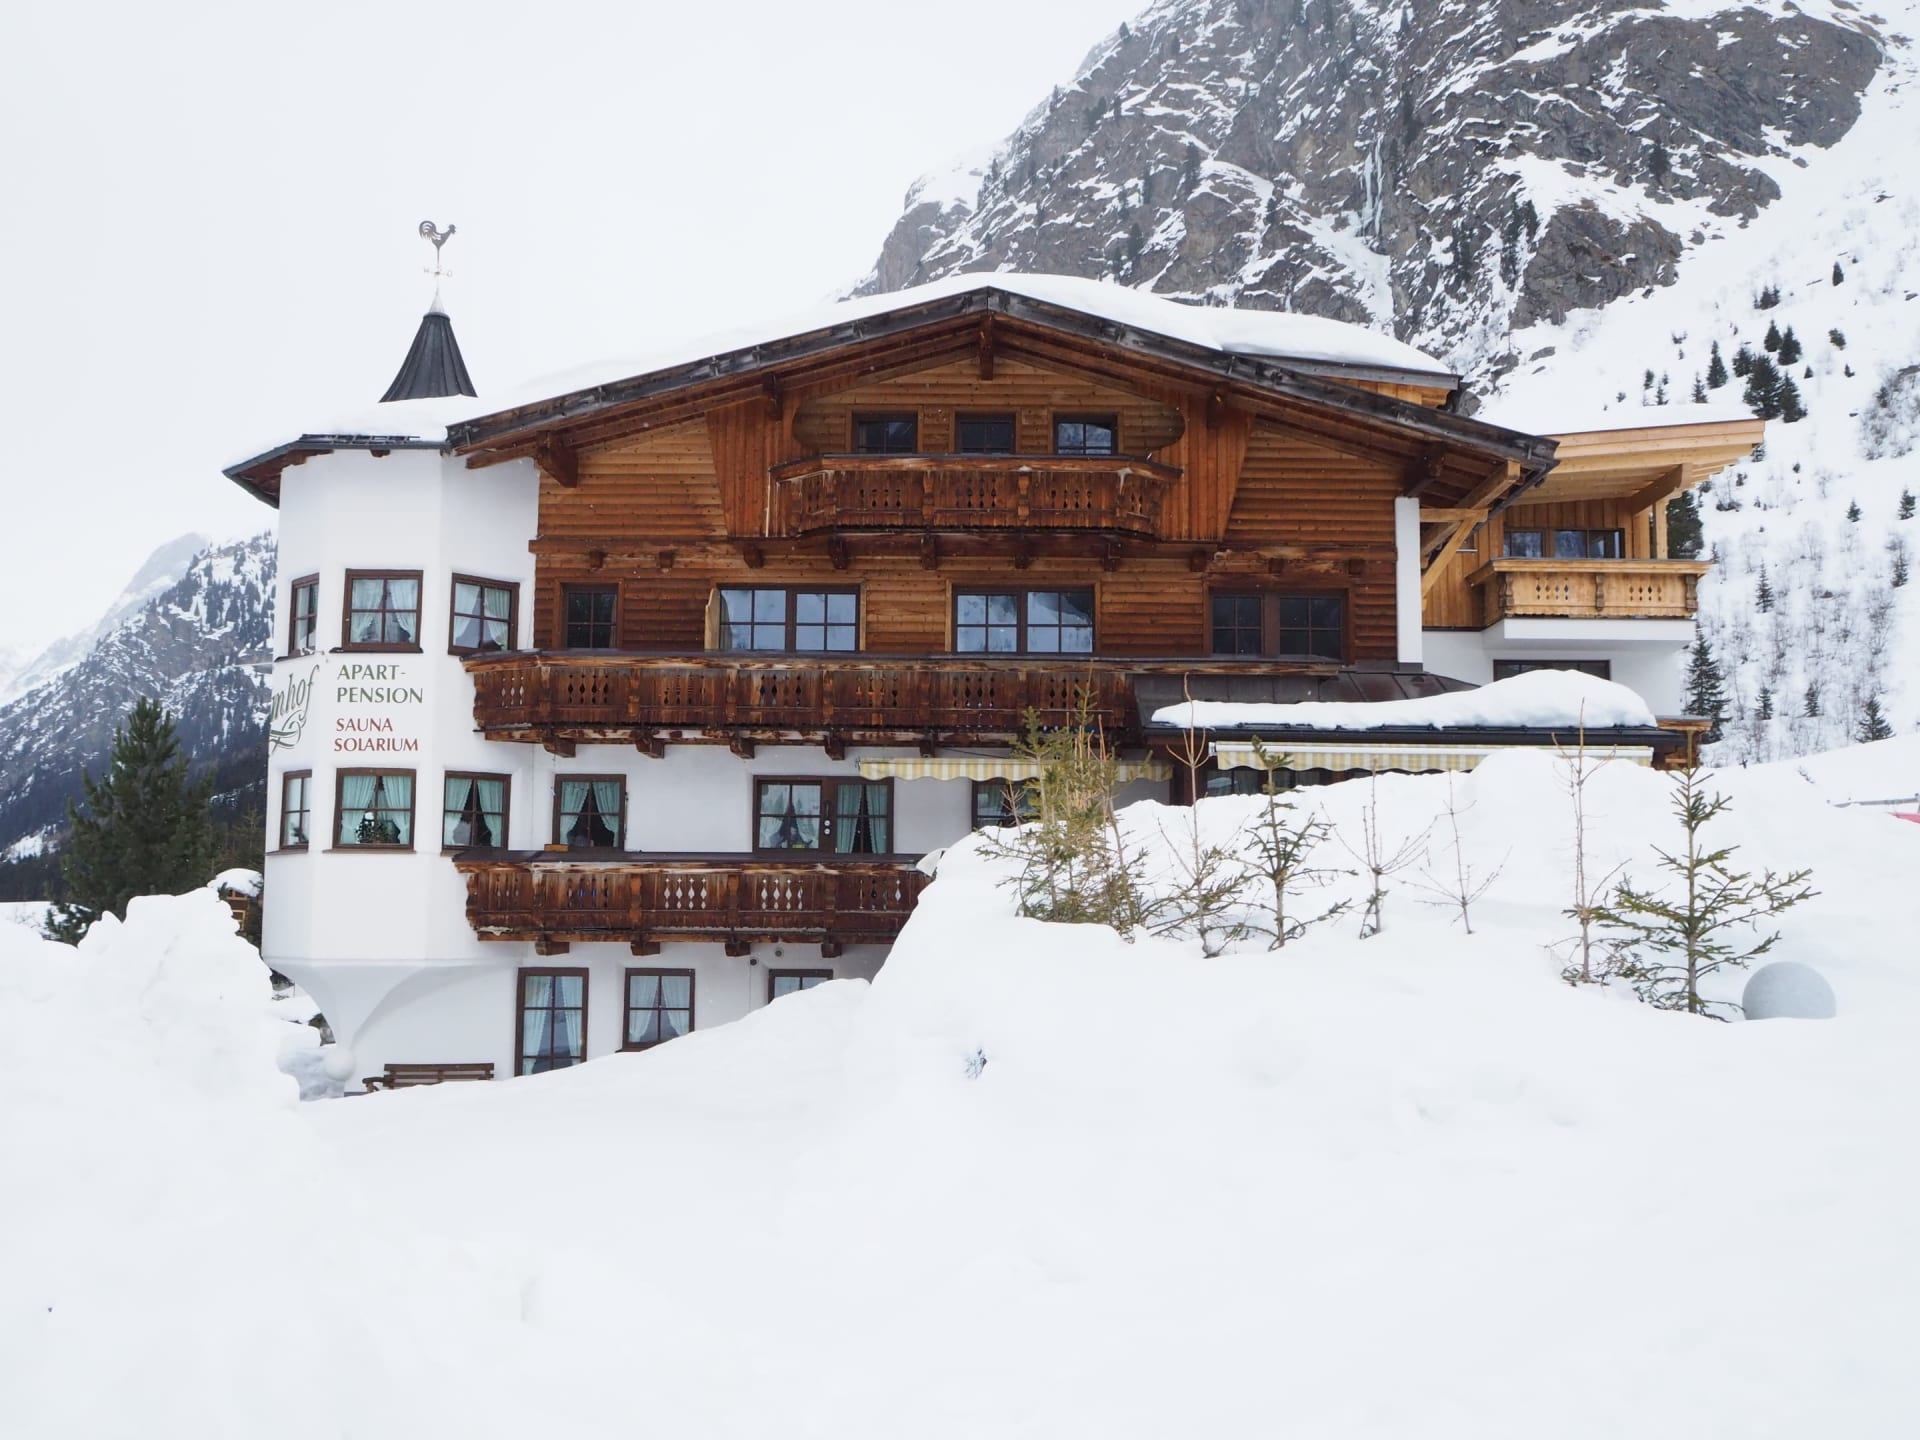 Apartpension Almhof - Reithof Pitztal